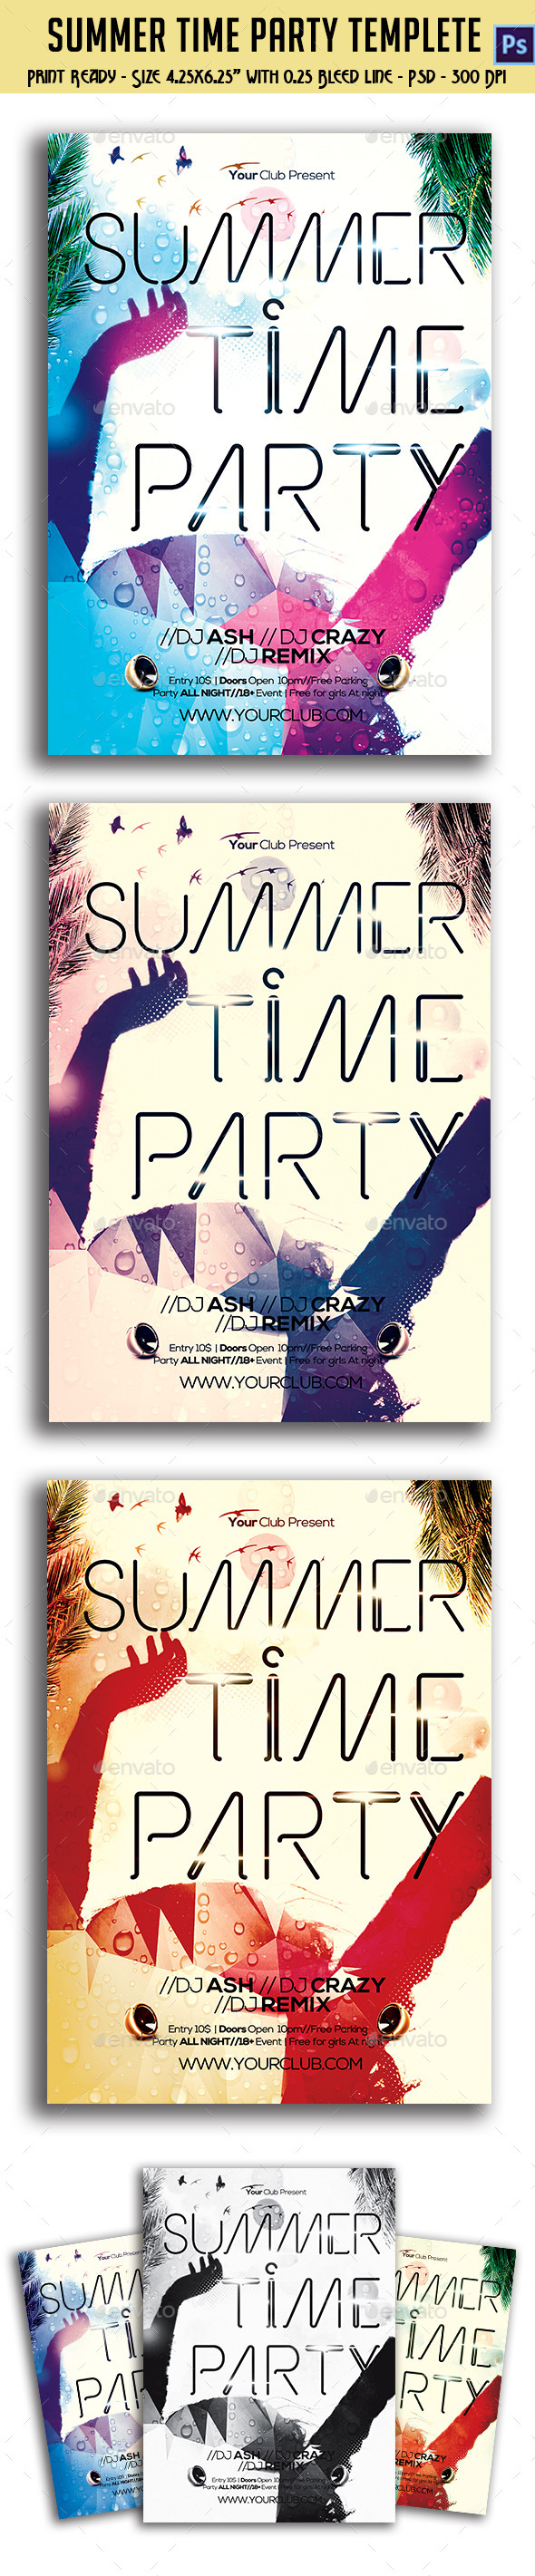 GraphicRiver Summer Time Party Flyer 10587953